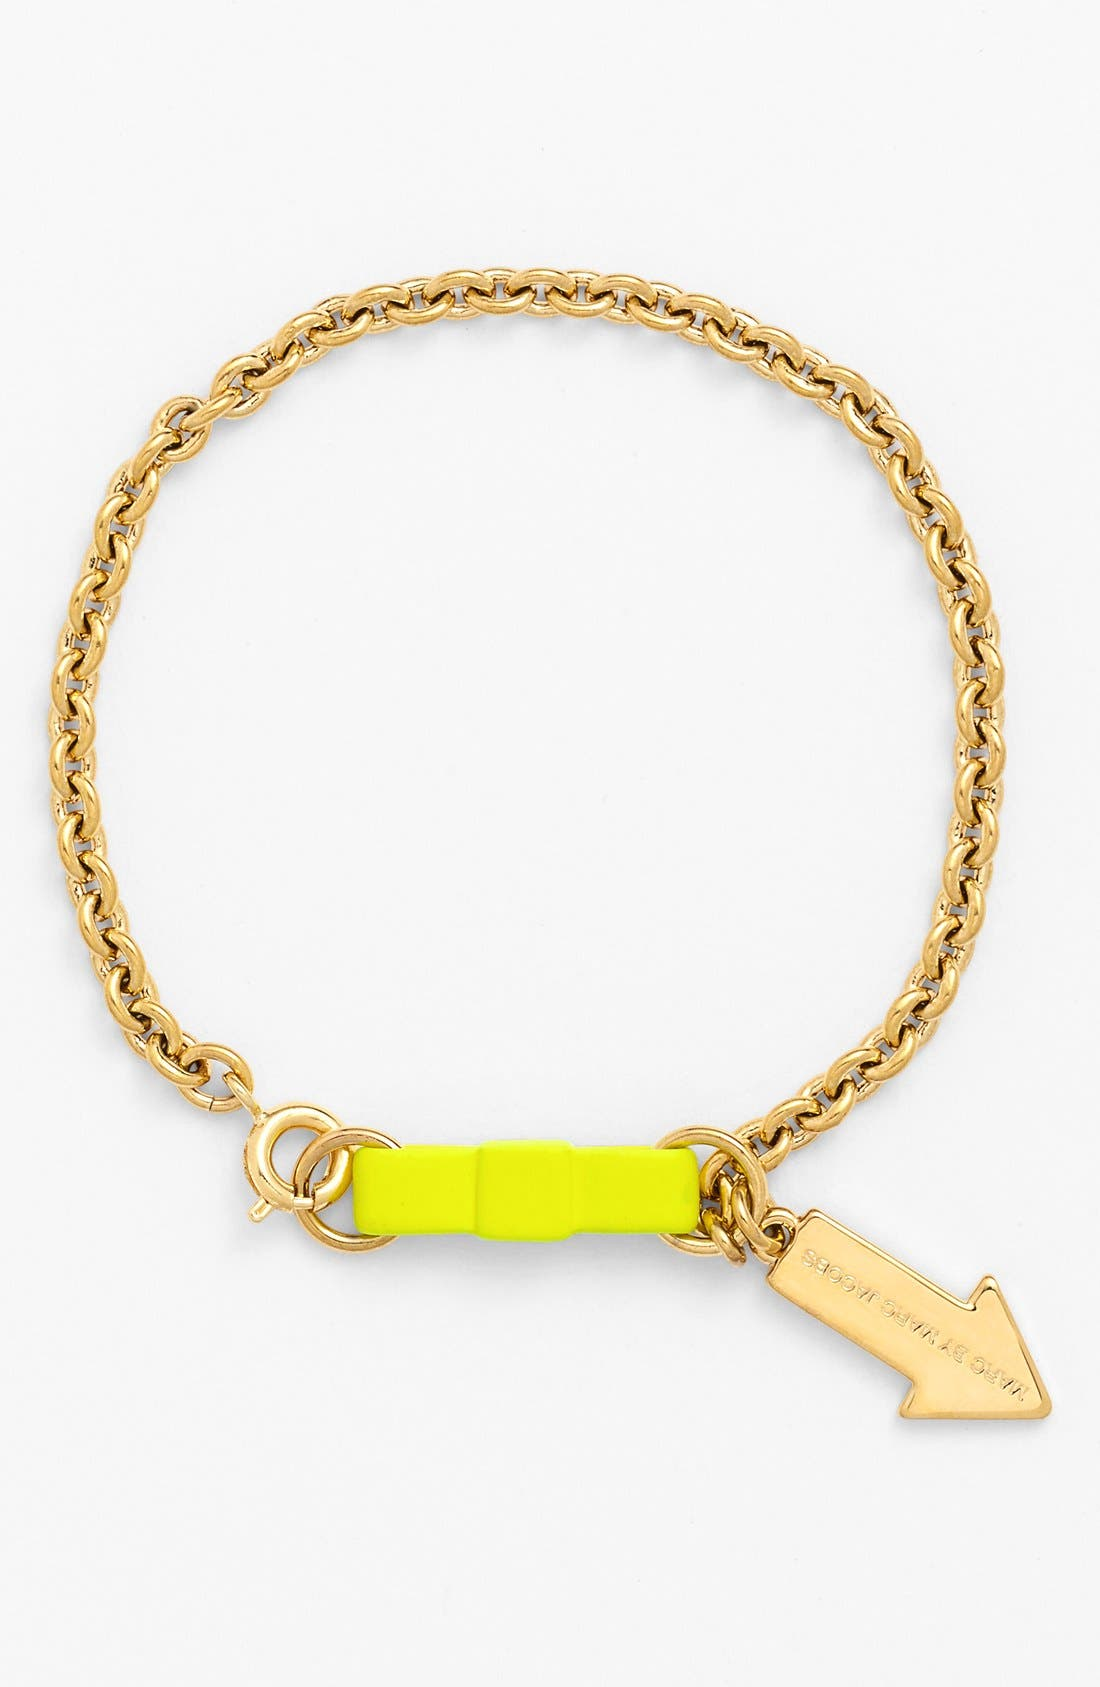 Alternate Image 1 Selected - MARC BY MARC JACOBS Bow Tie Charm Bracelet